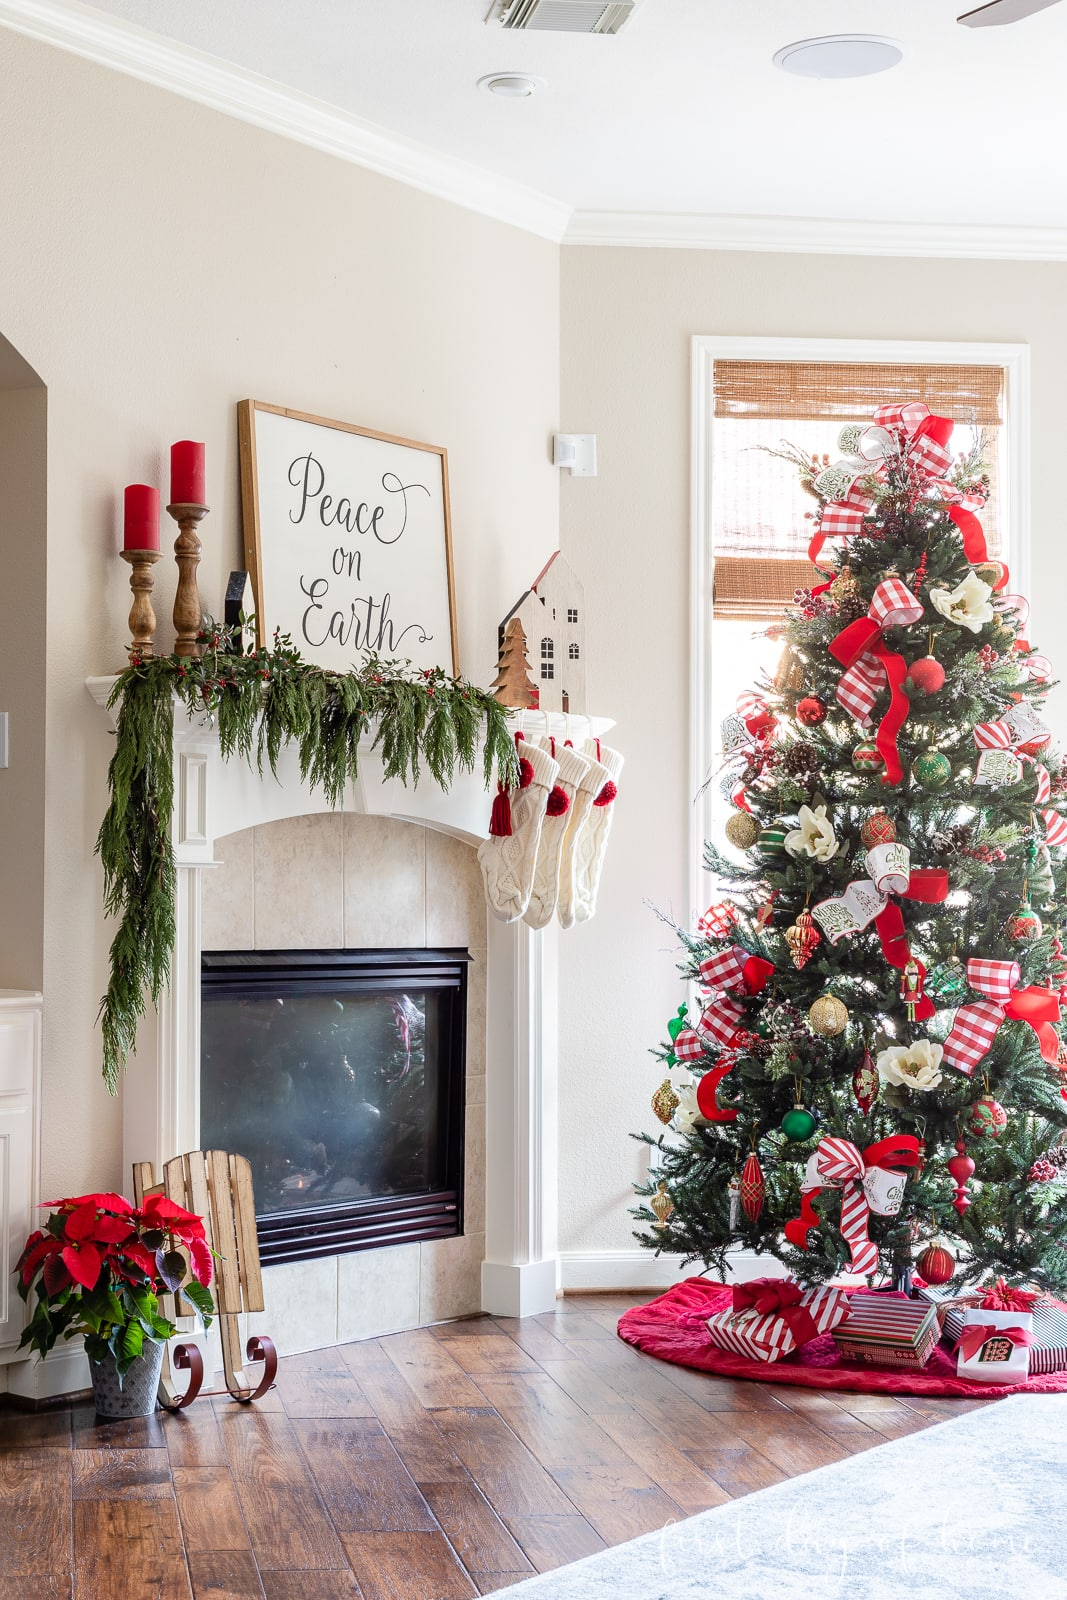 Christmas living room with red and green themed Christmas tree and farmhouse style mantel